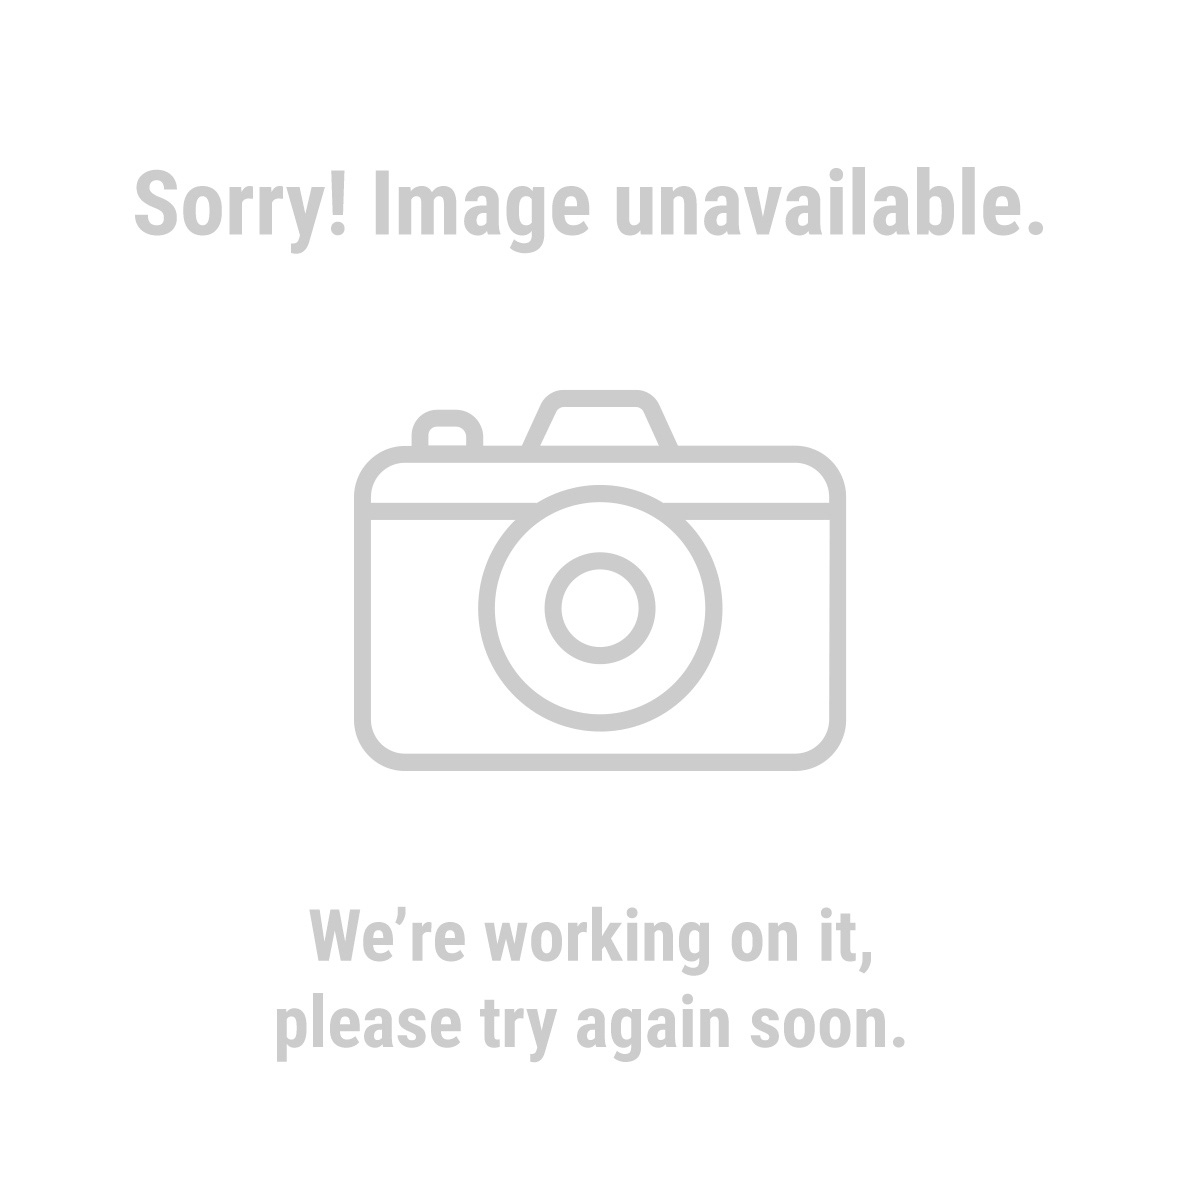 Rust-Oleum 67939 Gloss Crystal Clear Rust-Oleum Acrylic Enamel Spray Paint